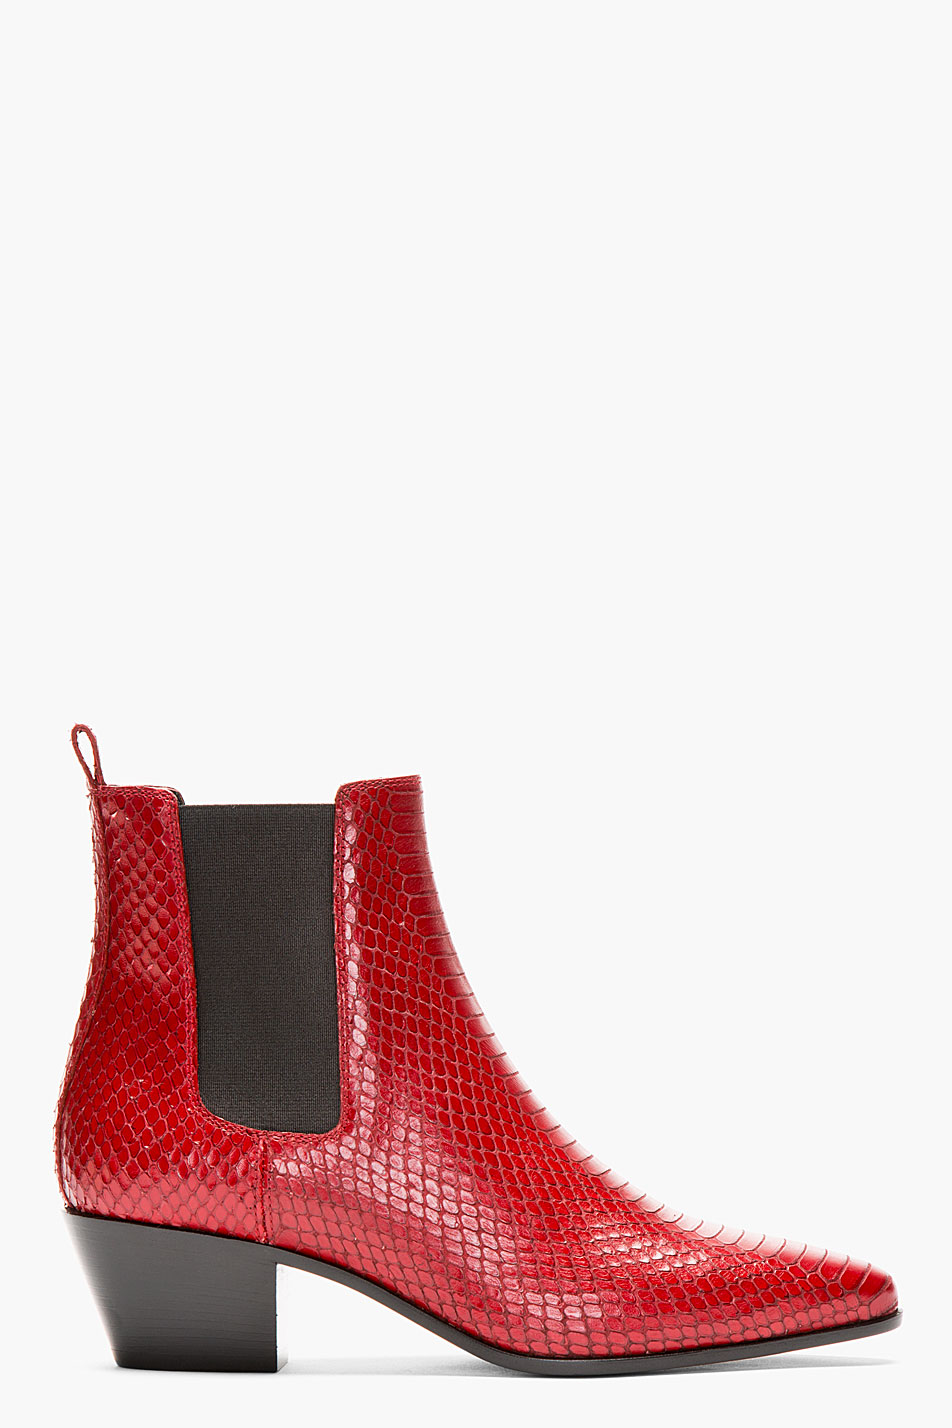 Lyst Saint Laurent Red Snakeskin Chelsea Boots In Red